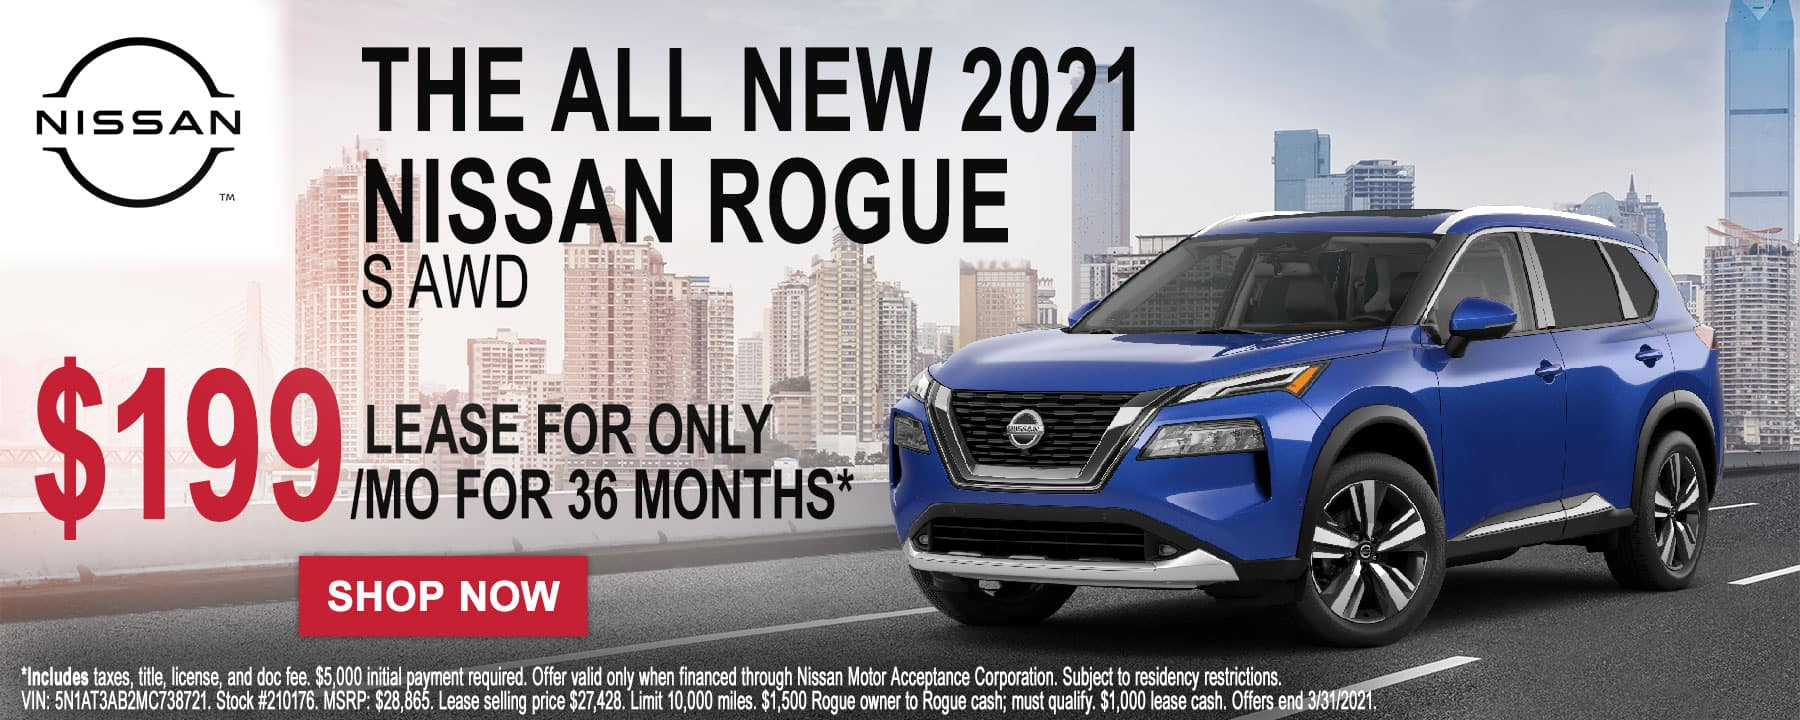 Rogue-Lease-offer-3-31-21-2